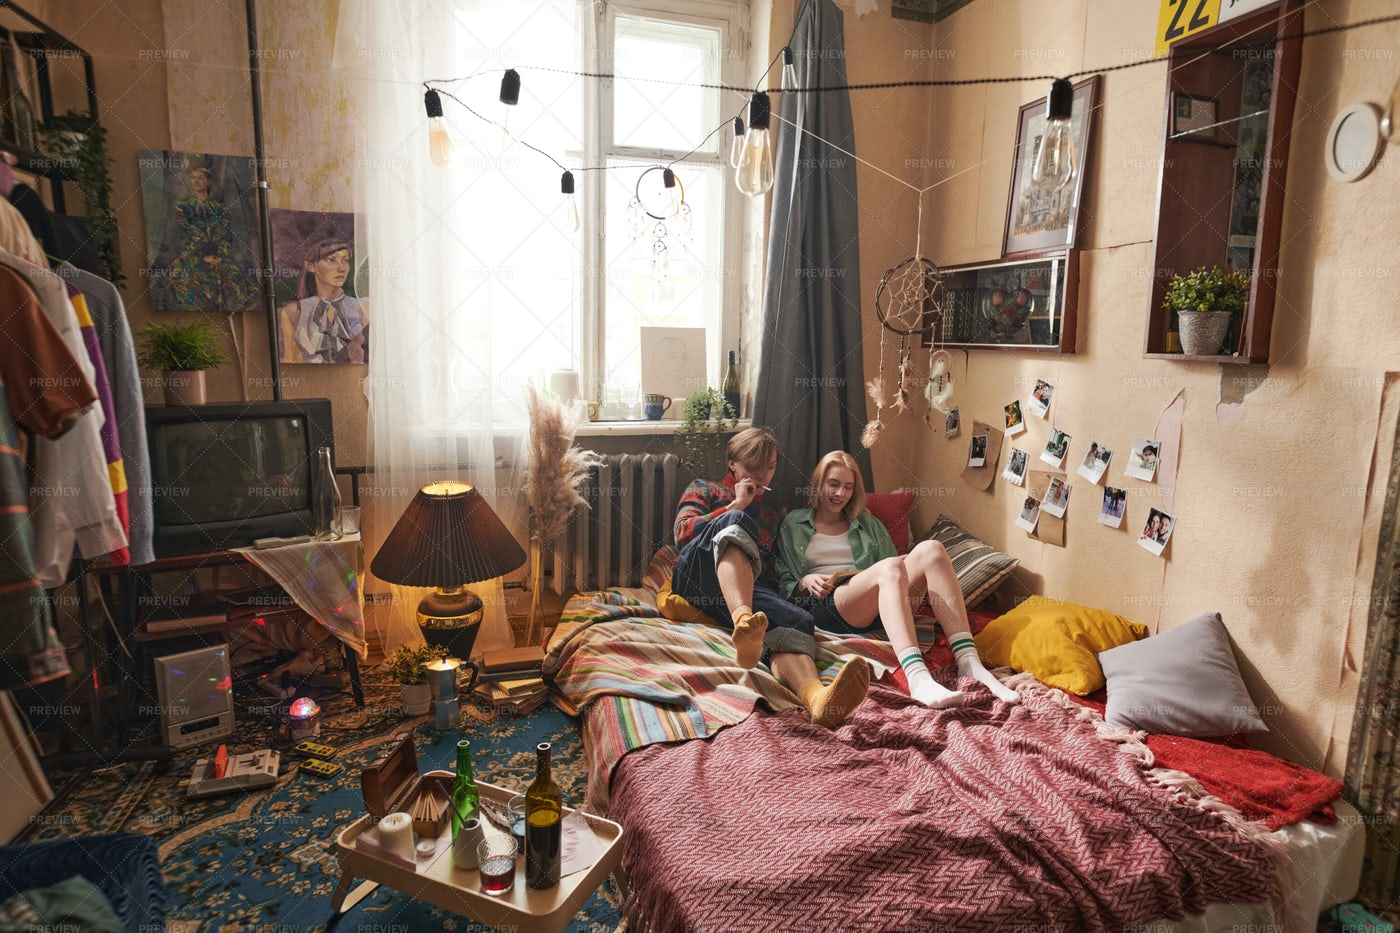 Couple Relaxing In The Room: Stock Photos